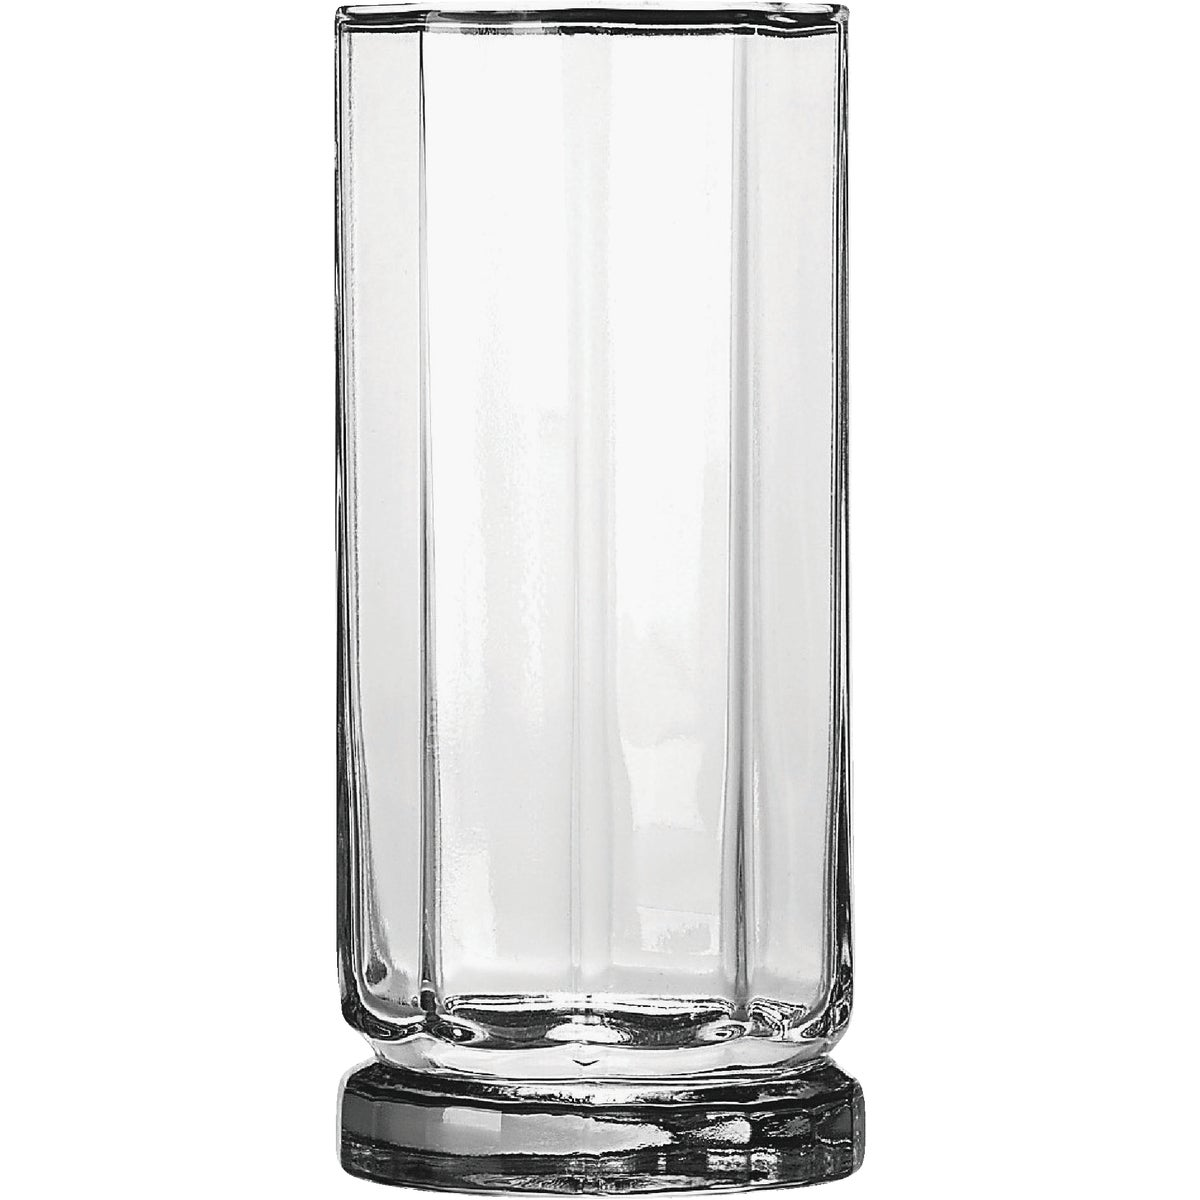 16.5OZ ICE TEA GLASS - 68141L13 by Anchor Hckg Roberts